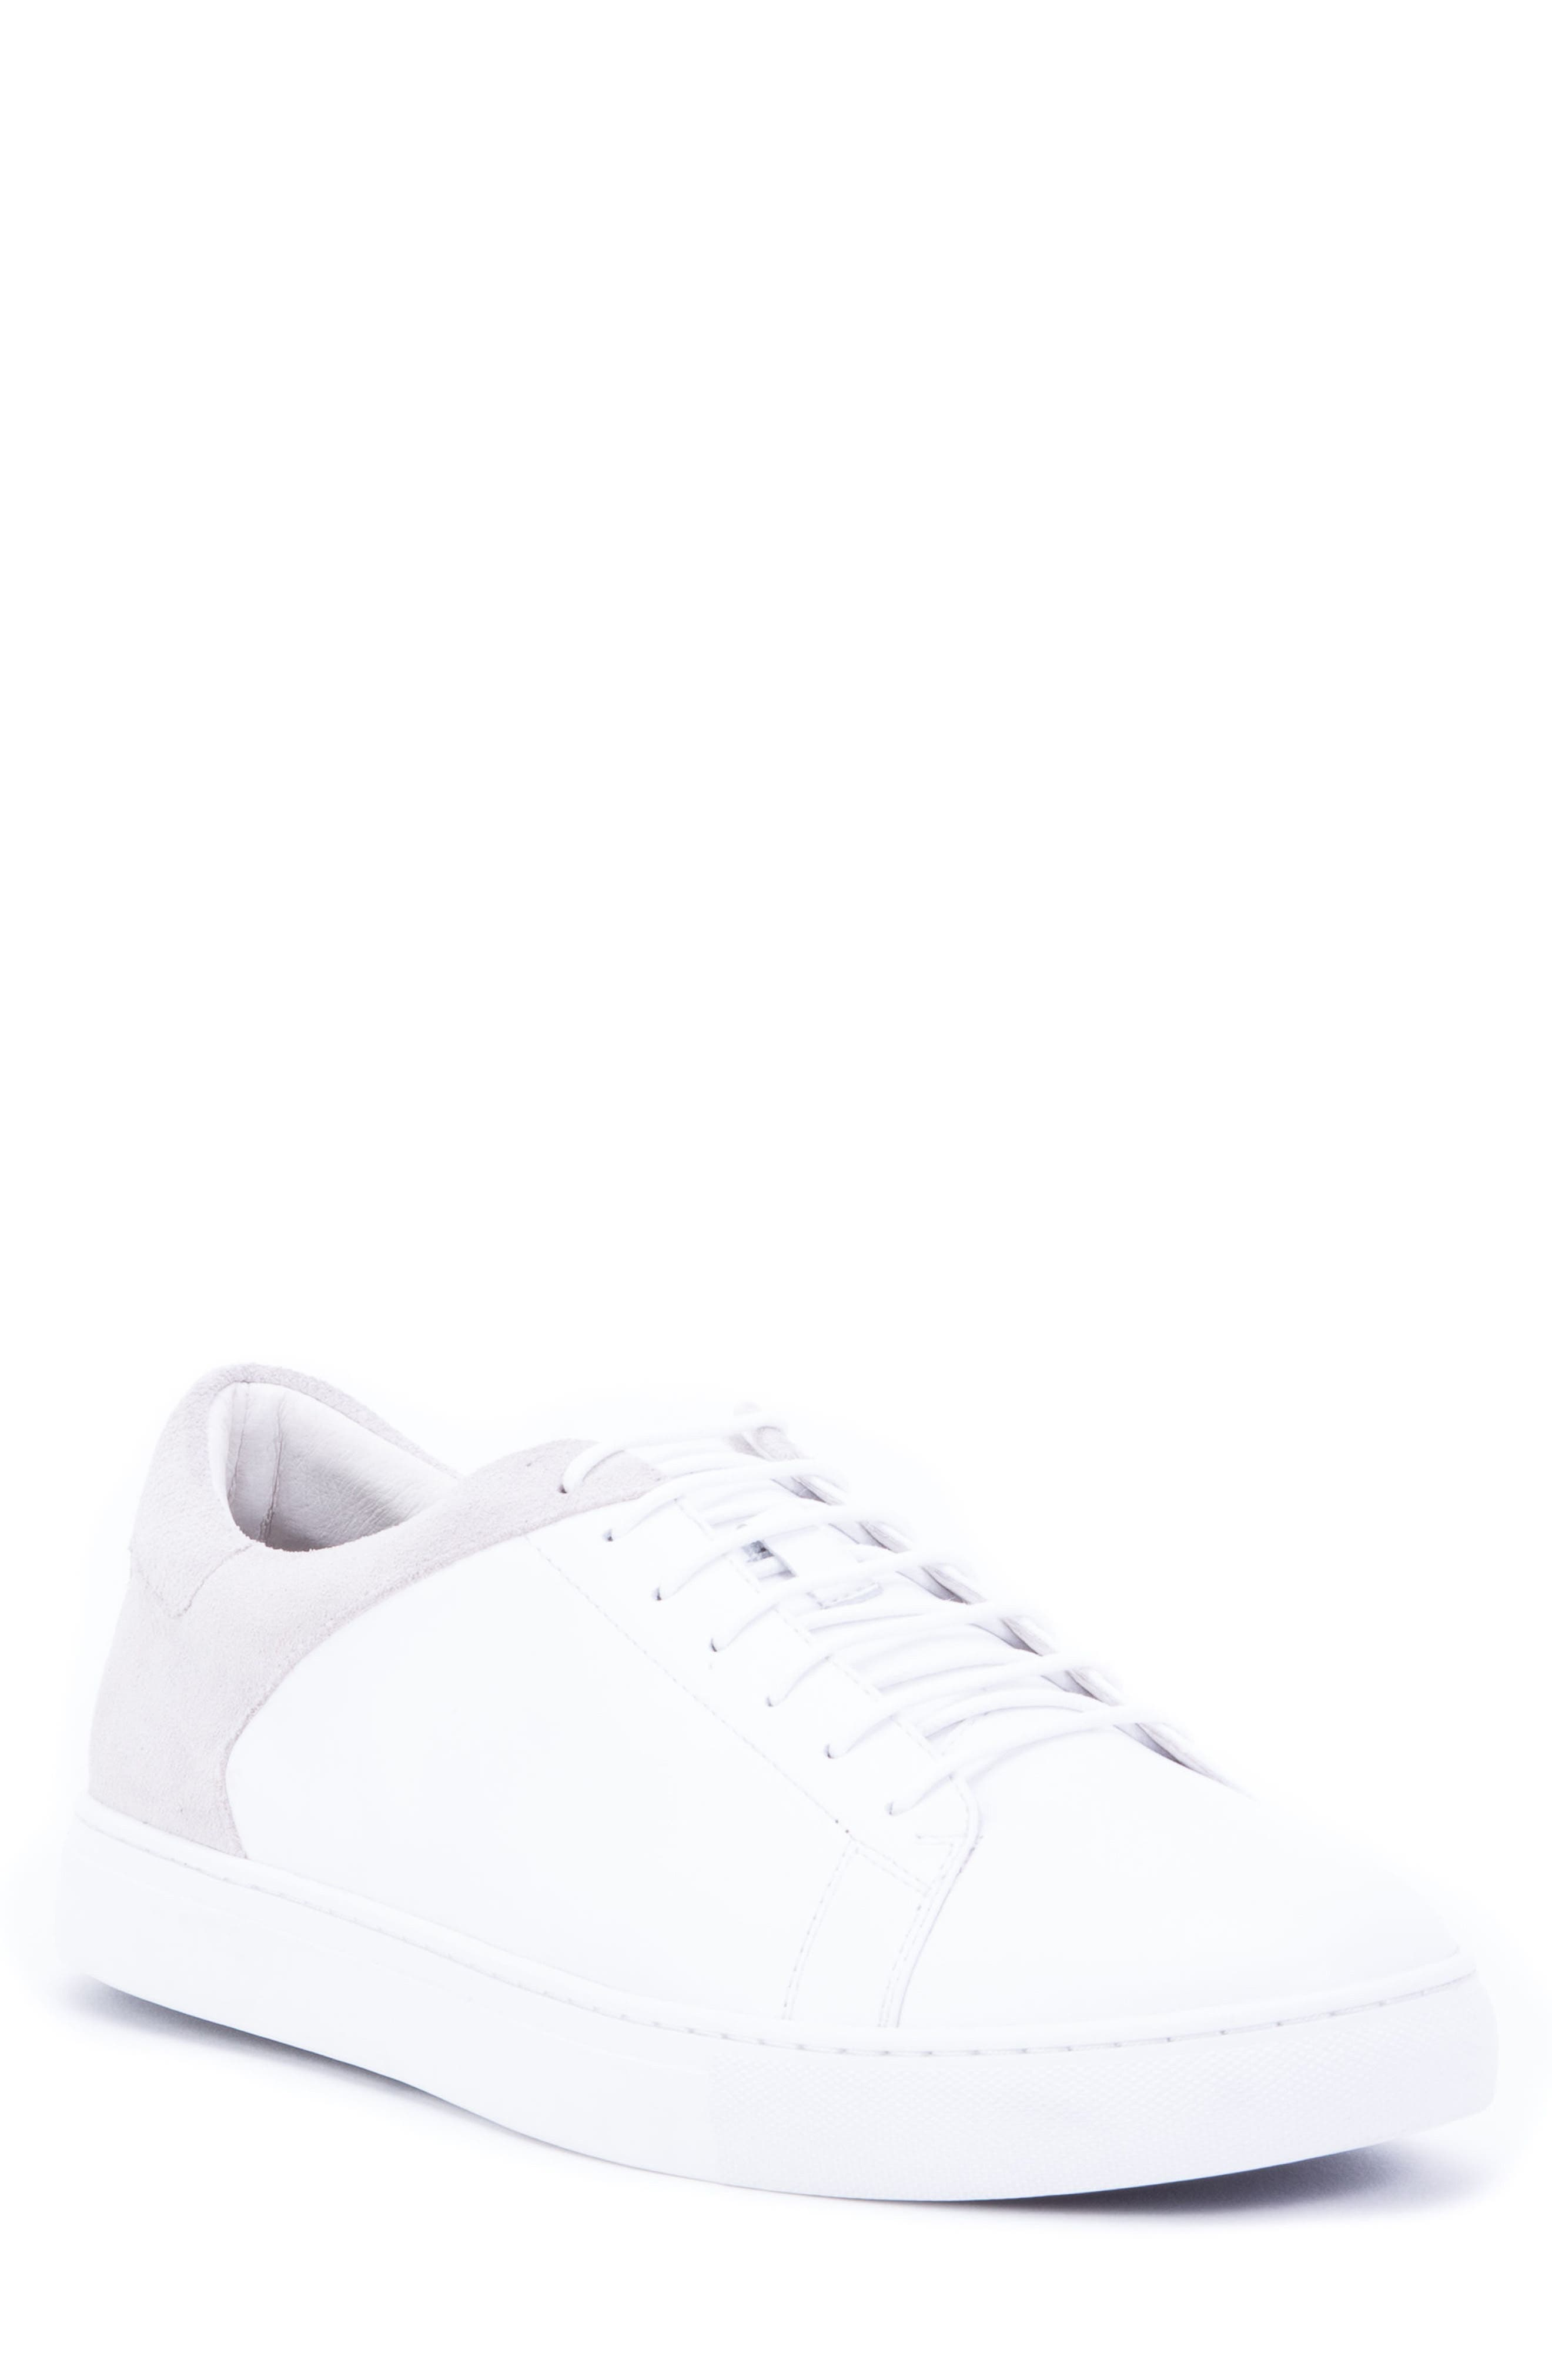 Cue Low Top Sneaker,                         Main,                         color, White Leather/ Suede